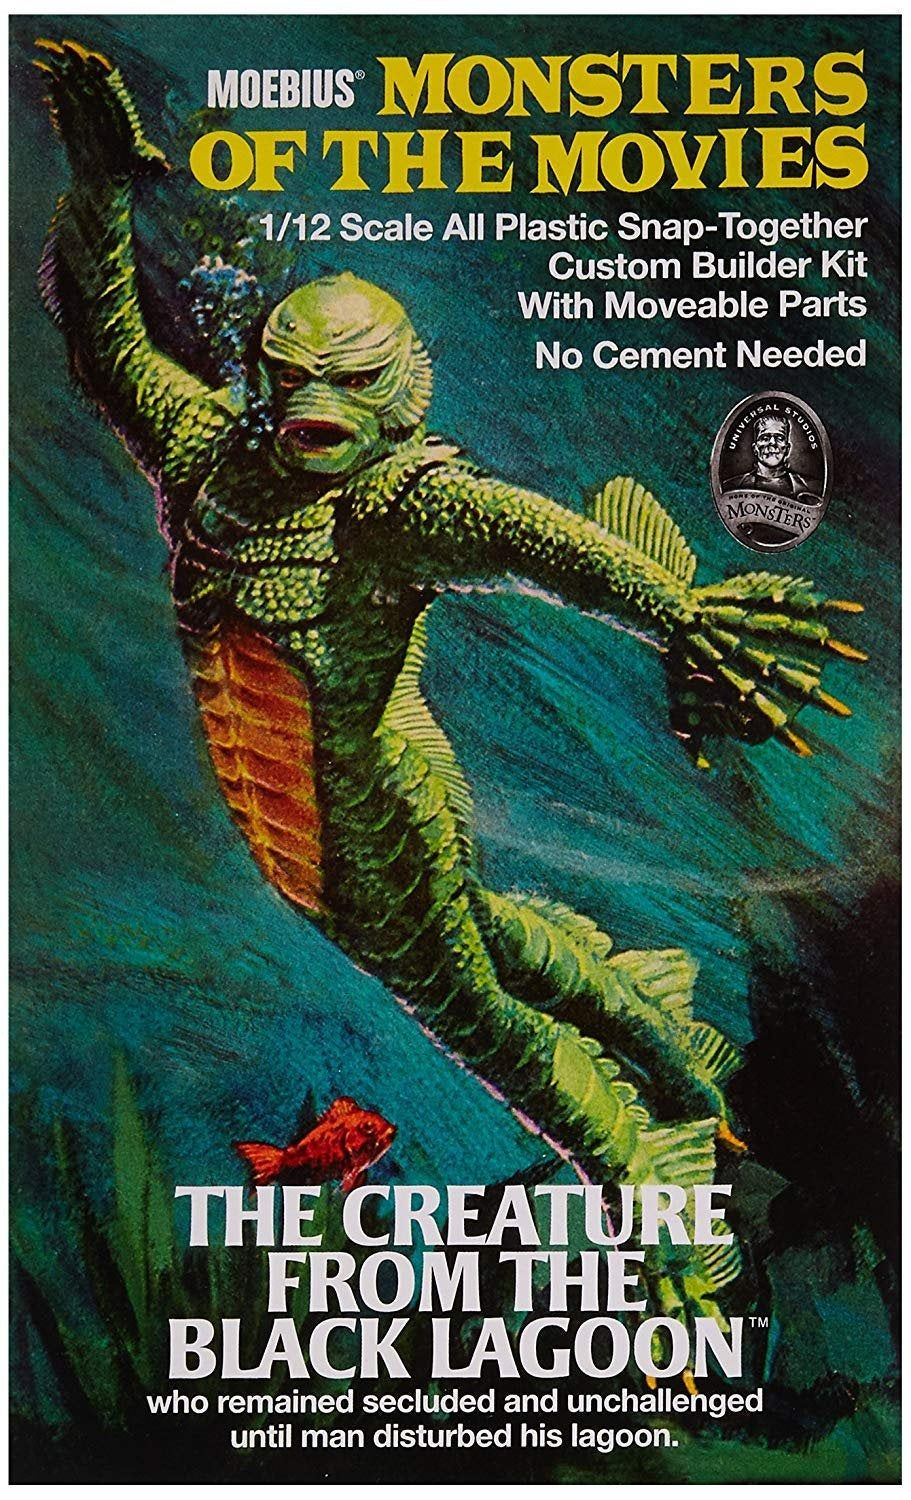 Creature from the Black Lagoon Moebius Monsters of the